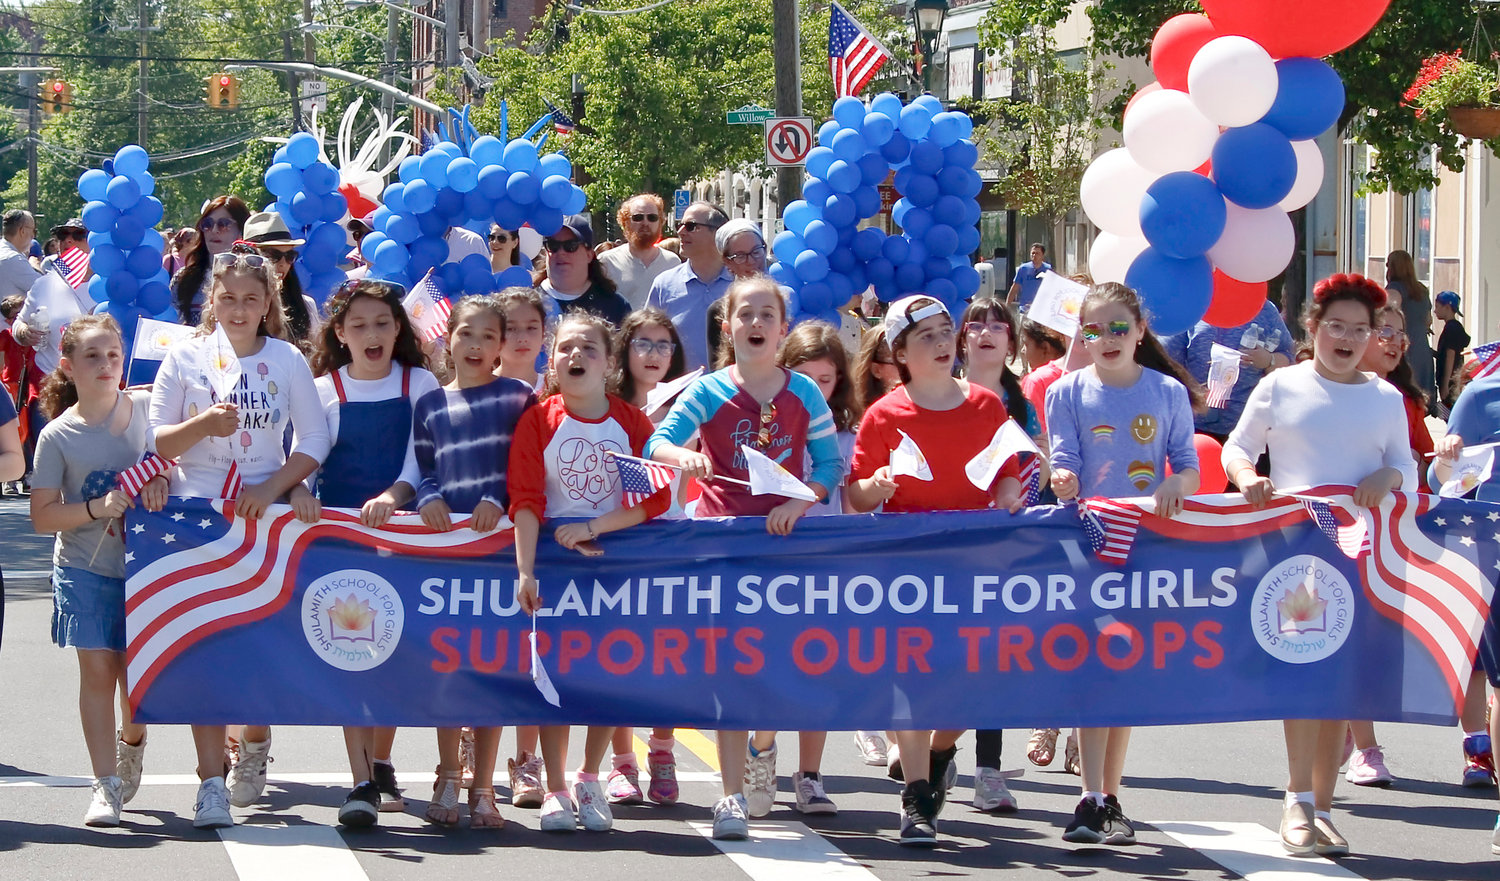 The Shulamith School for Girls in Cedarhurst joined the Lawrence-Cedarhurst Memorial Day Parade on Sunday.